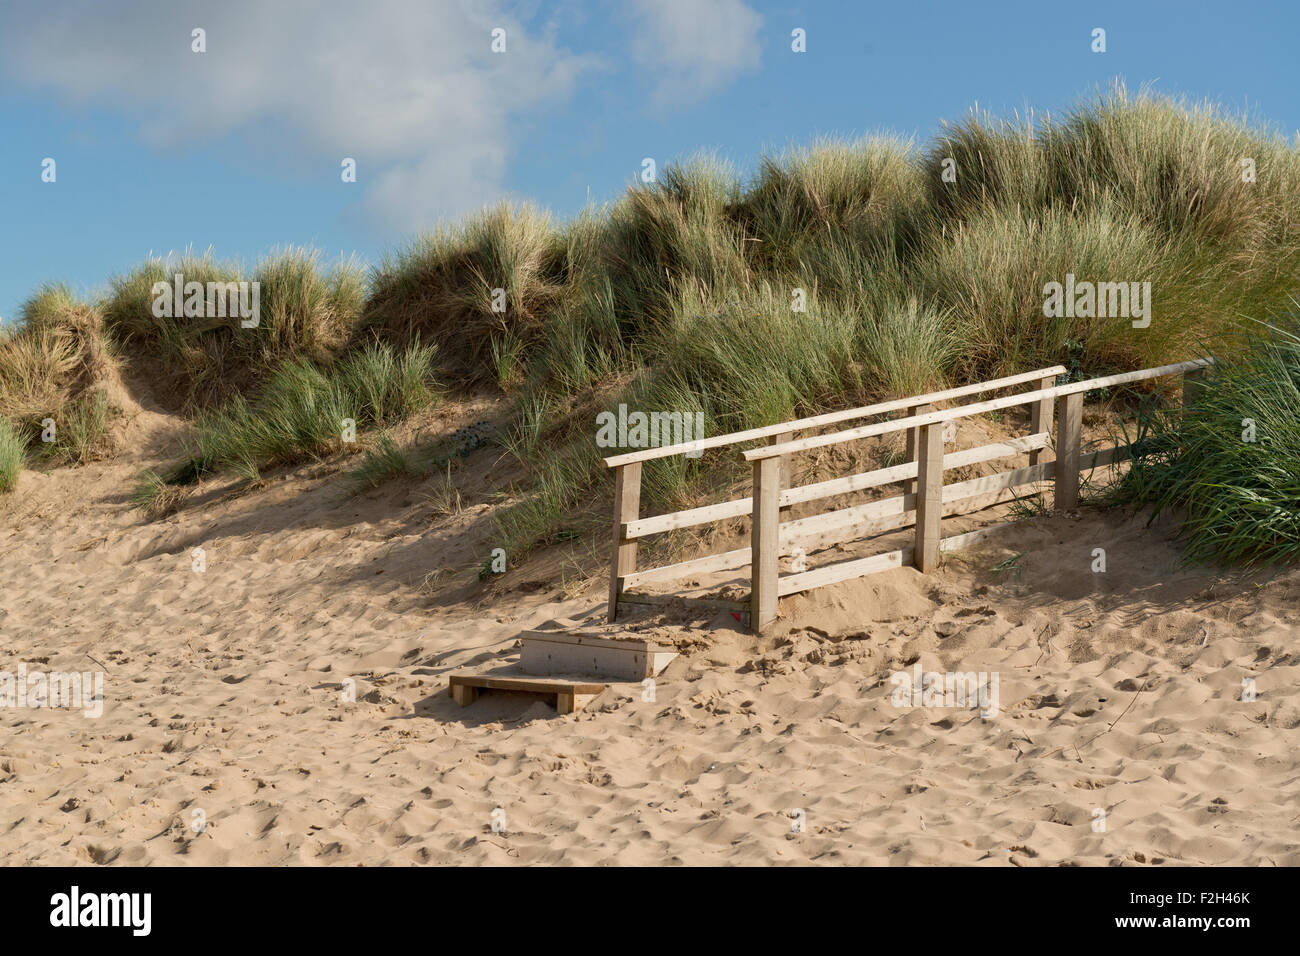 The wildlife conservation site at Gronant dunes in Flintshire, close to Prestatyn in Denbighshire. - Stock Image